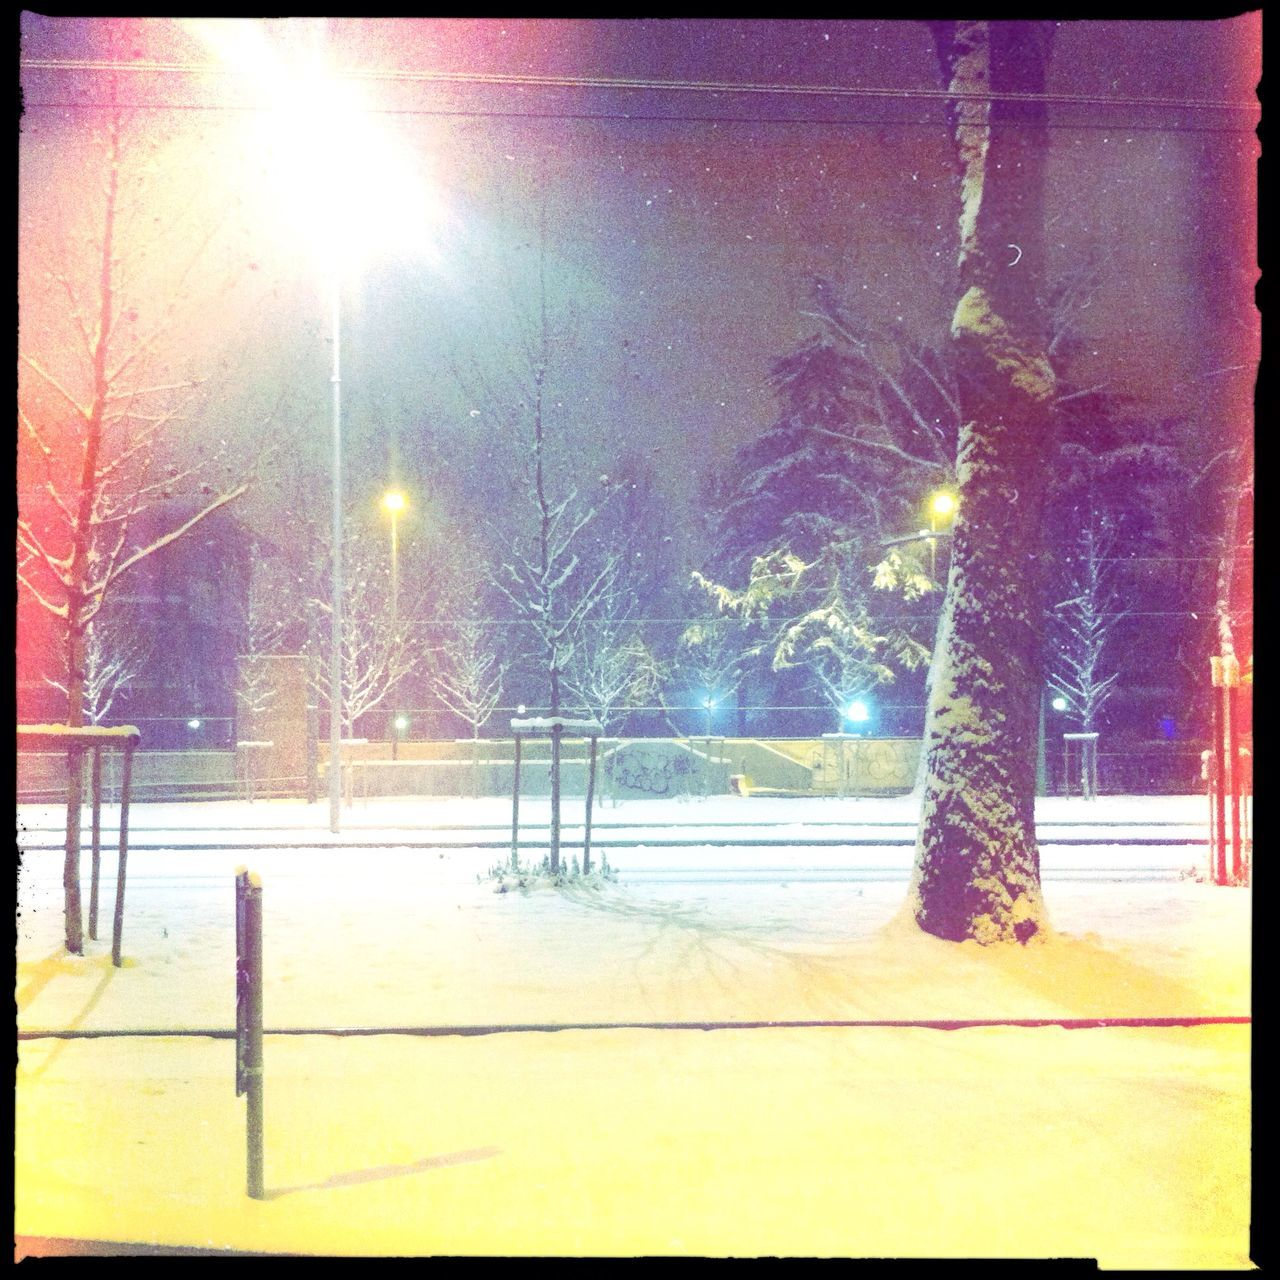 cold temperature, winter, lens flare, snow, illuminated, night, outdoors, tree, no people, street light, nature, road, sky, city, ice rink